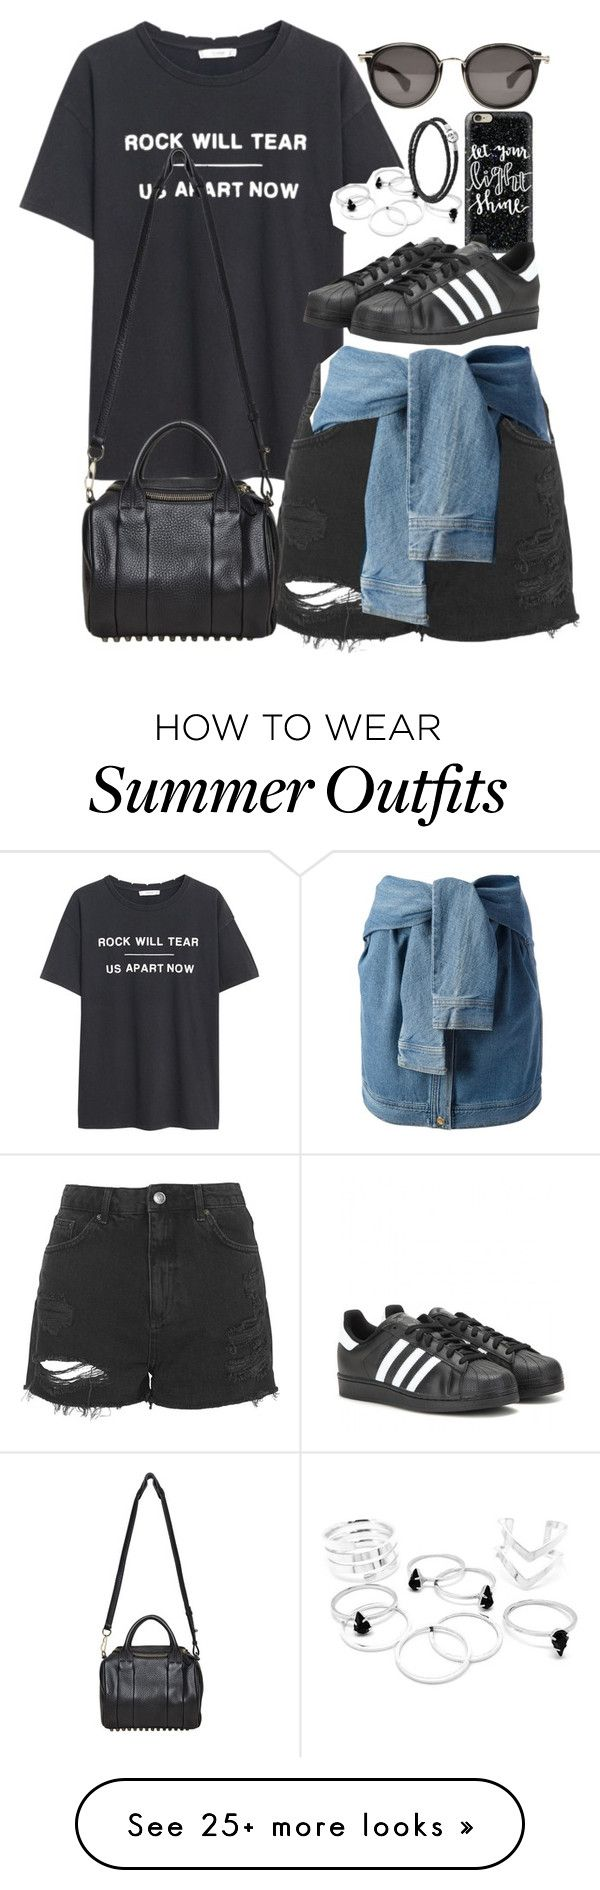 """""""Outfit for summer with sneakers"""" by ferned on Polyvore featuring MANGO, Topshop, DKNY, Alexander Wang, Casetify, adidas, Pandora, Moncler, women's clothing and women's fashion"""